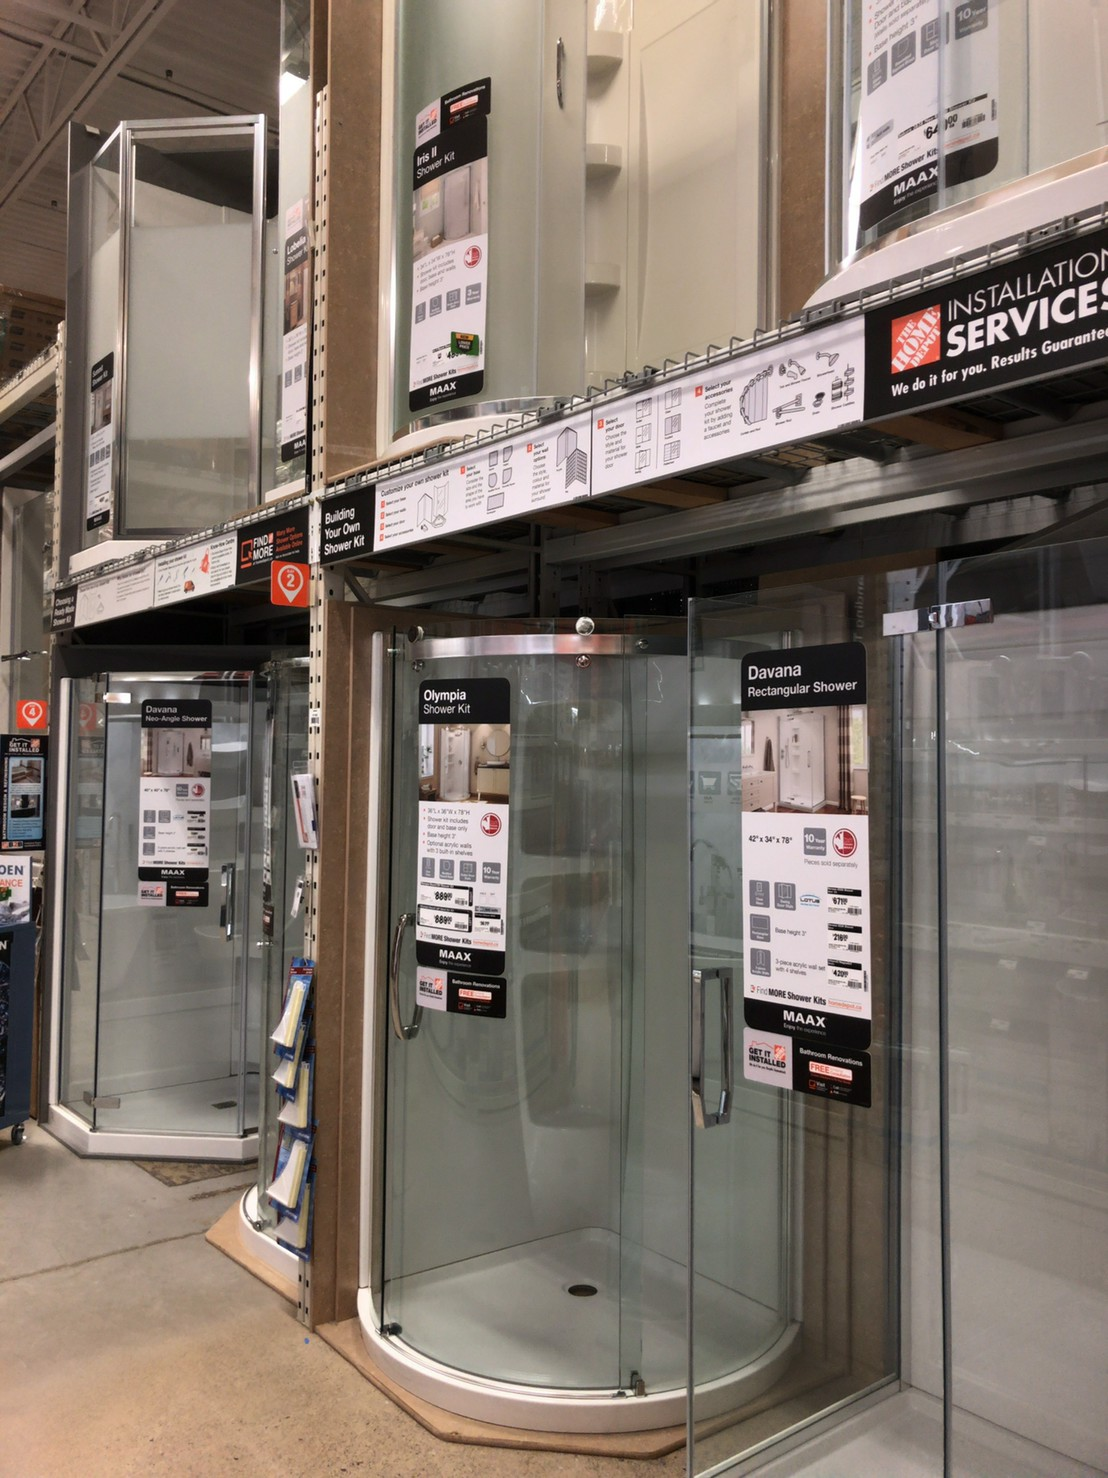 The home depot Shower room